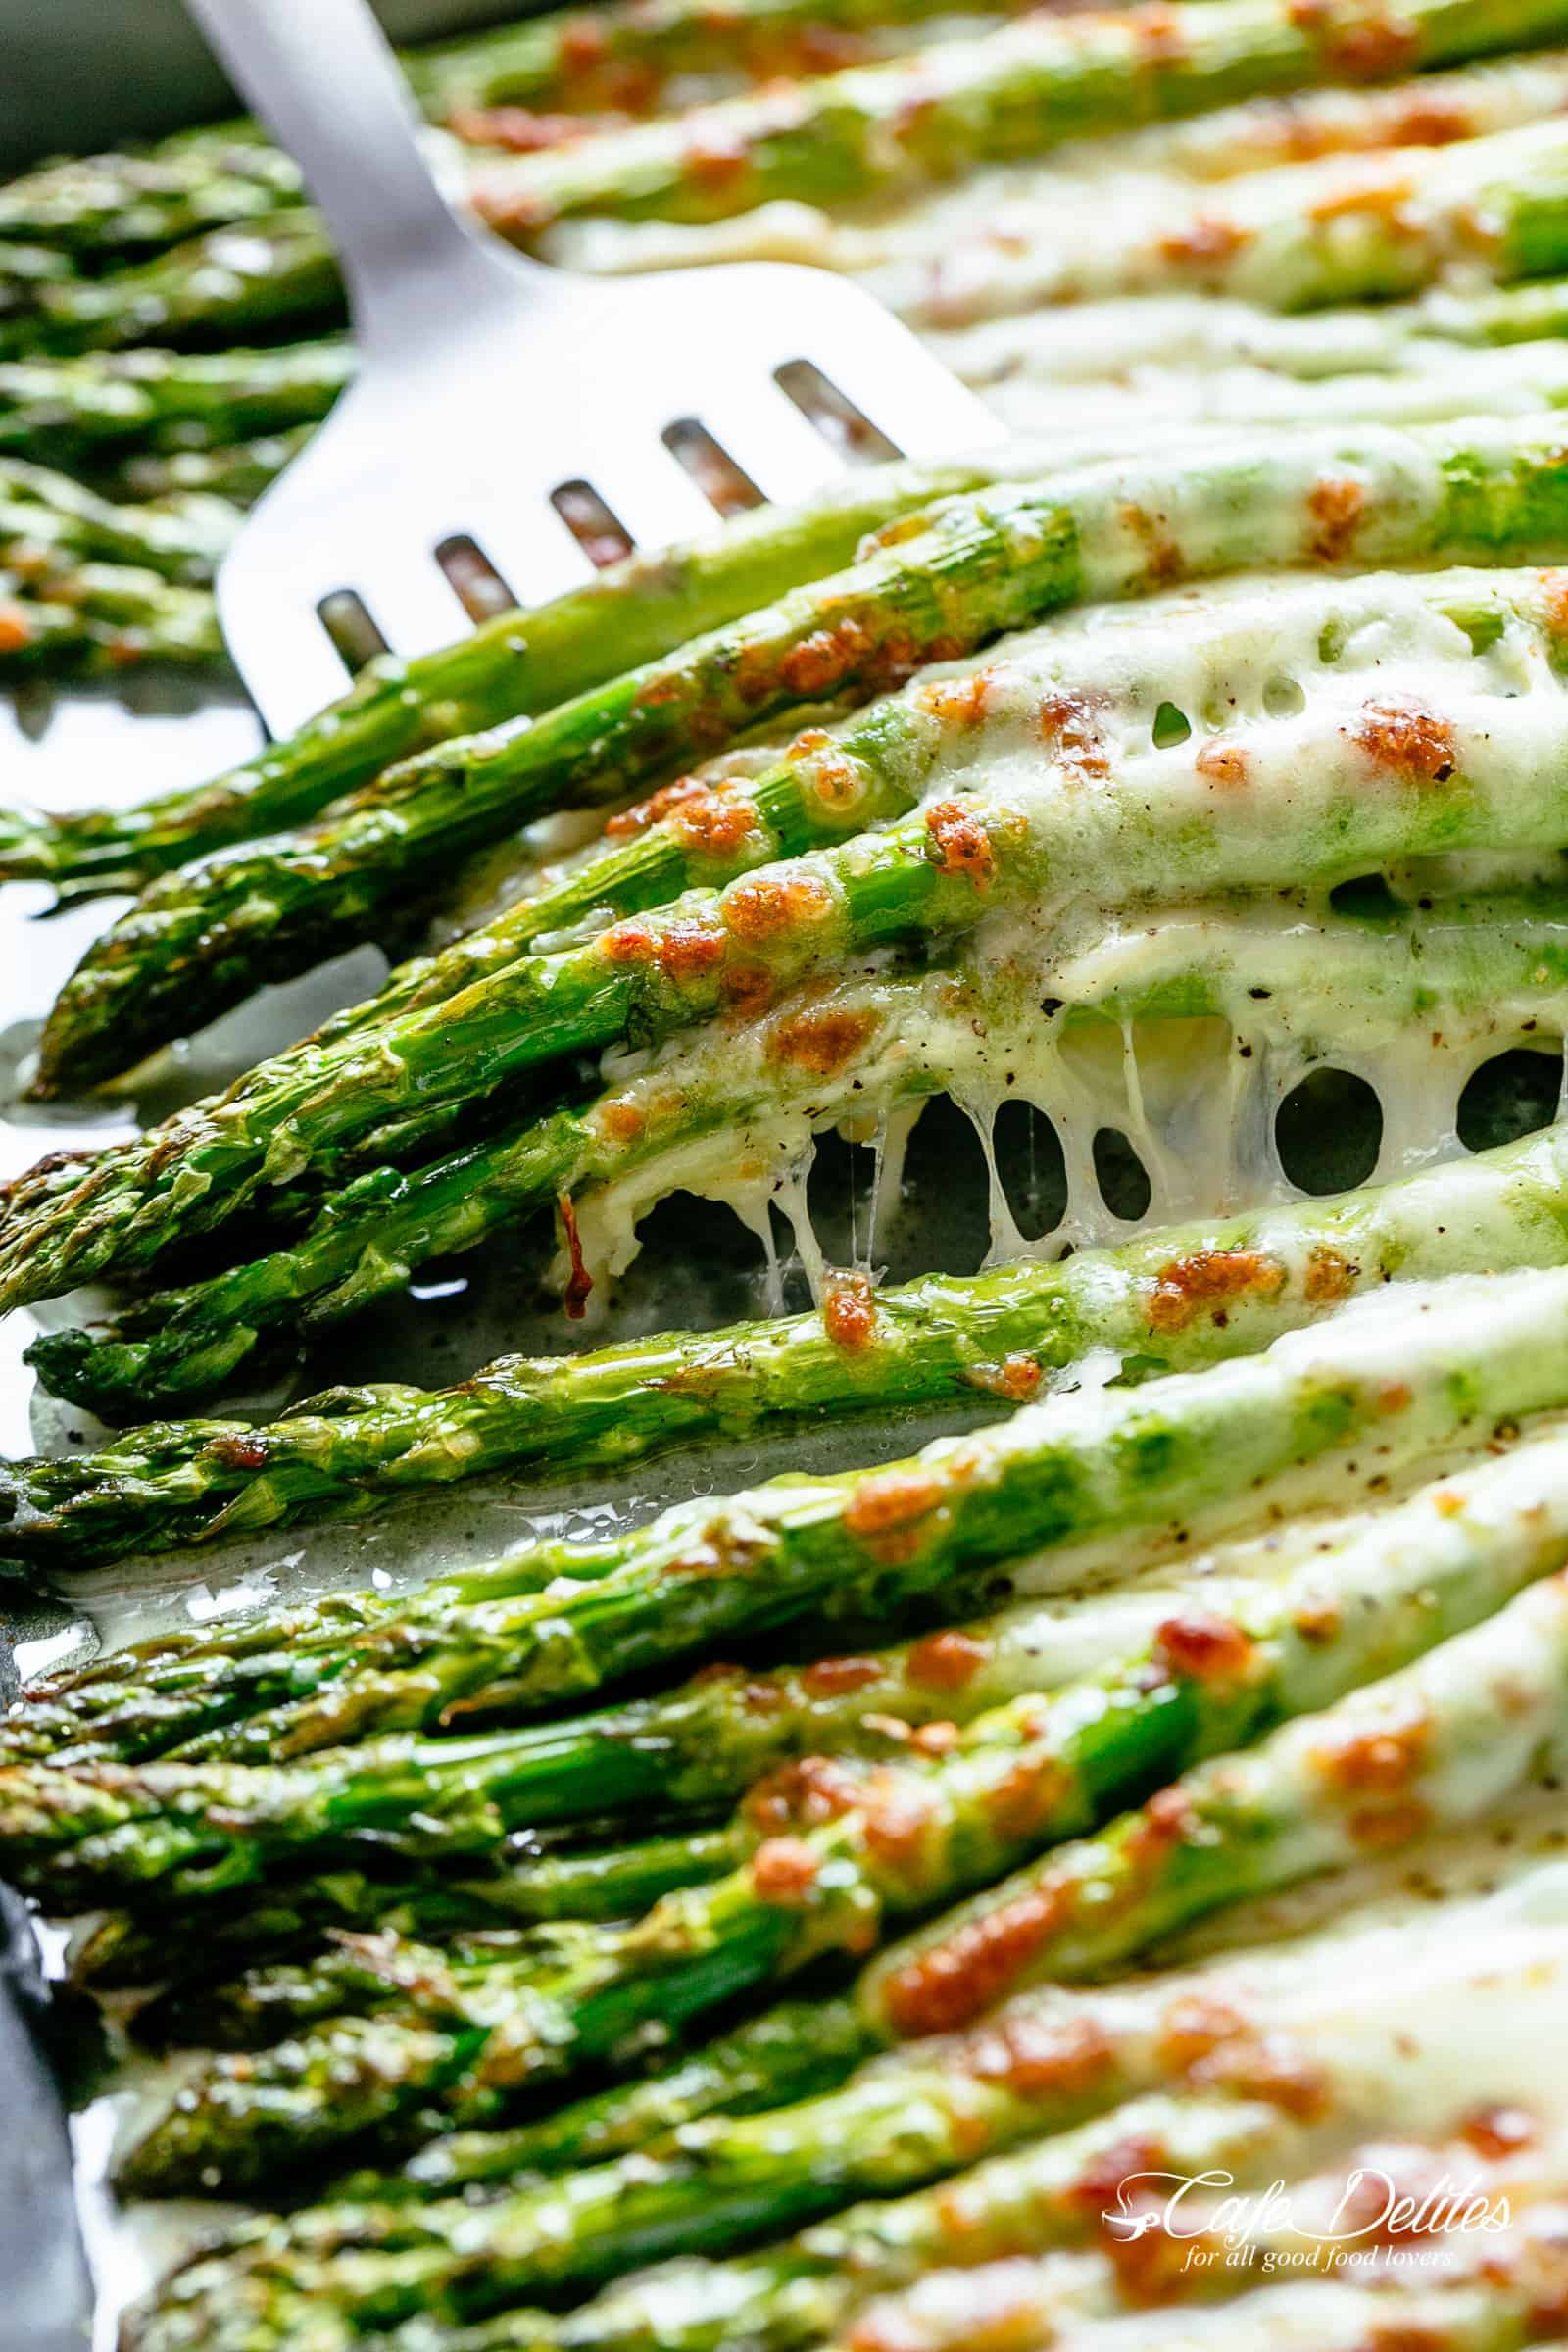 A silver spatula picks up a pile of five roasted asparagus spears topped with melted mozzarella cheese | cafedelites.com